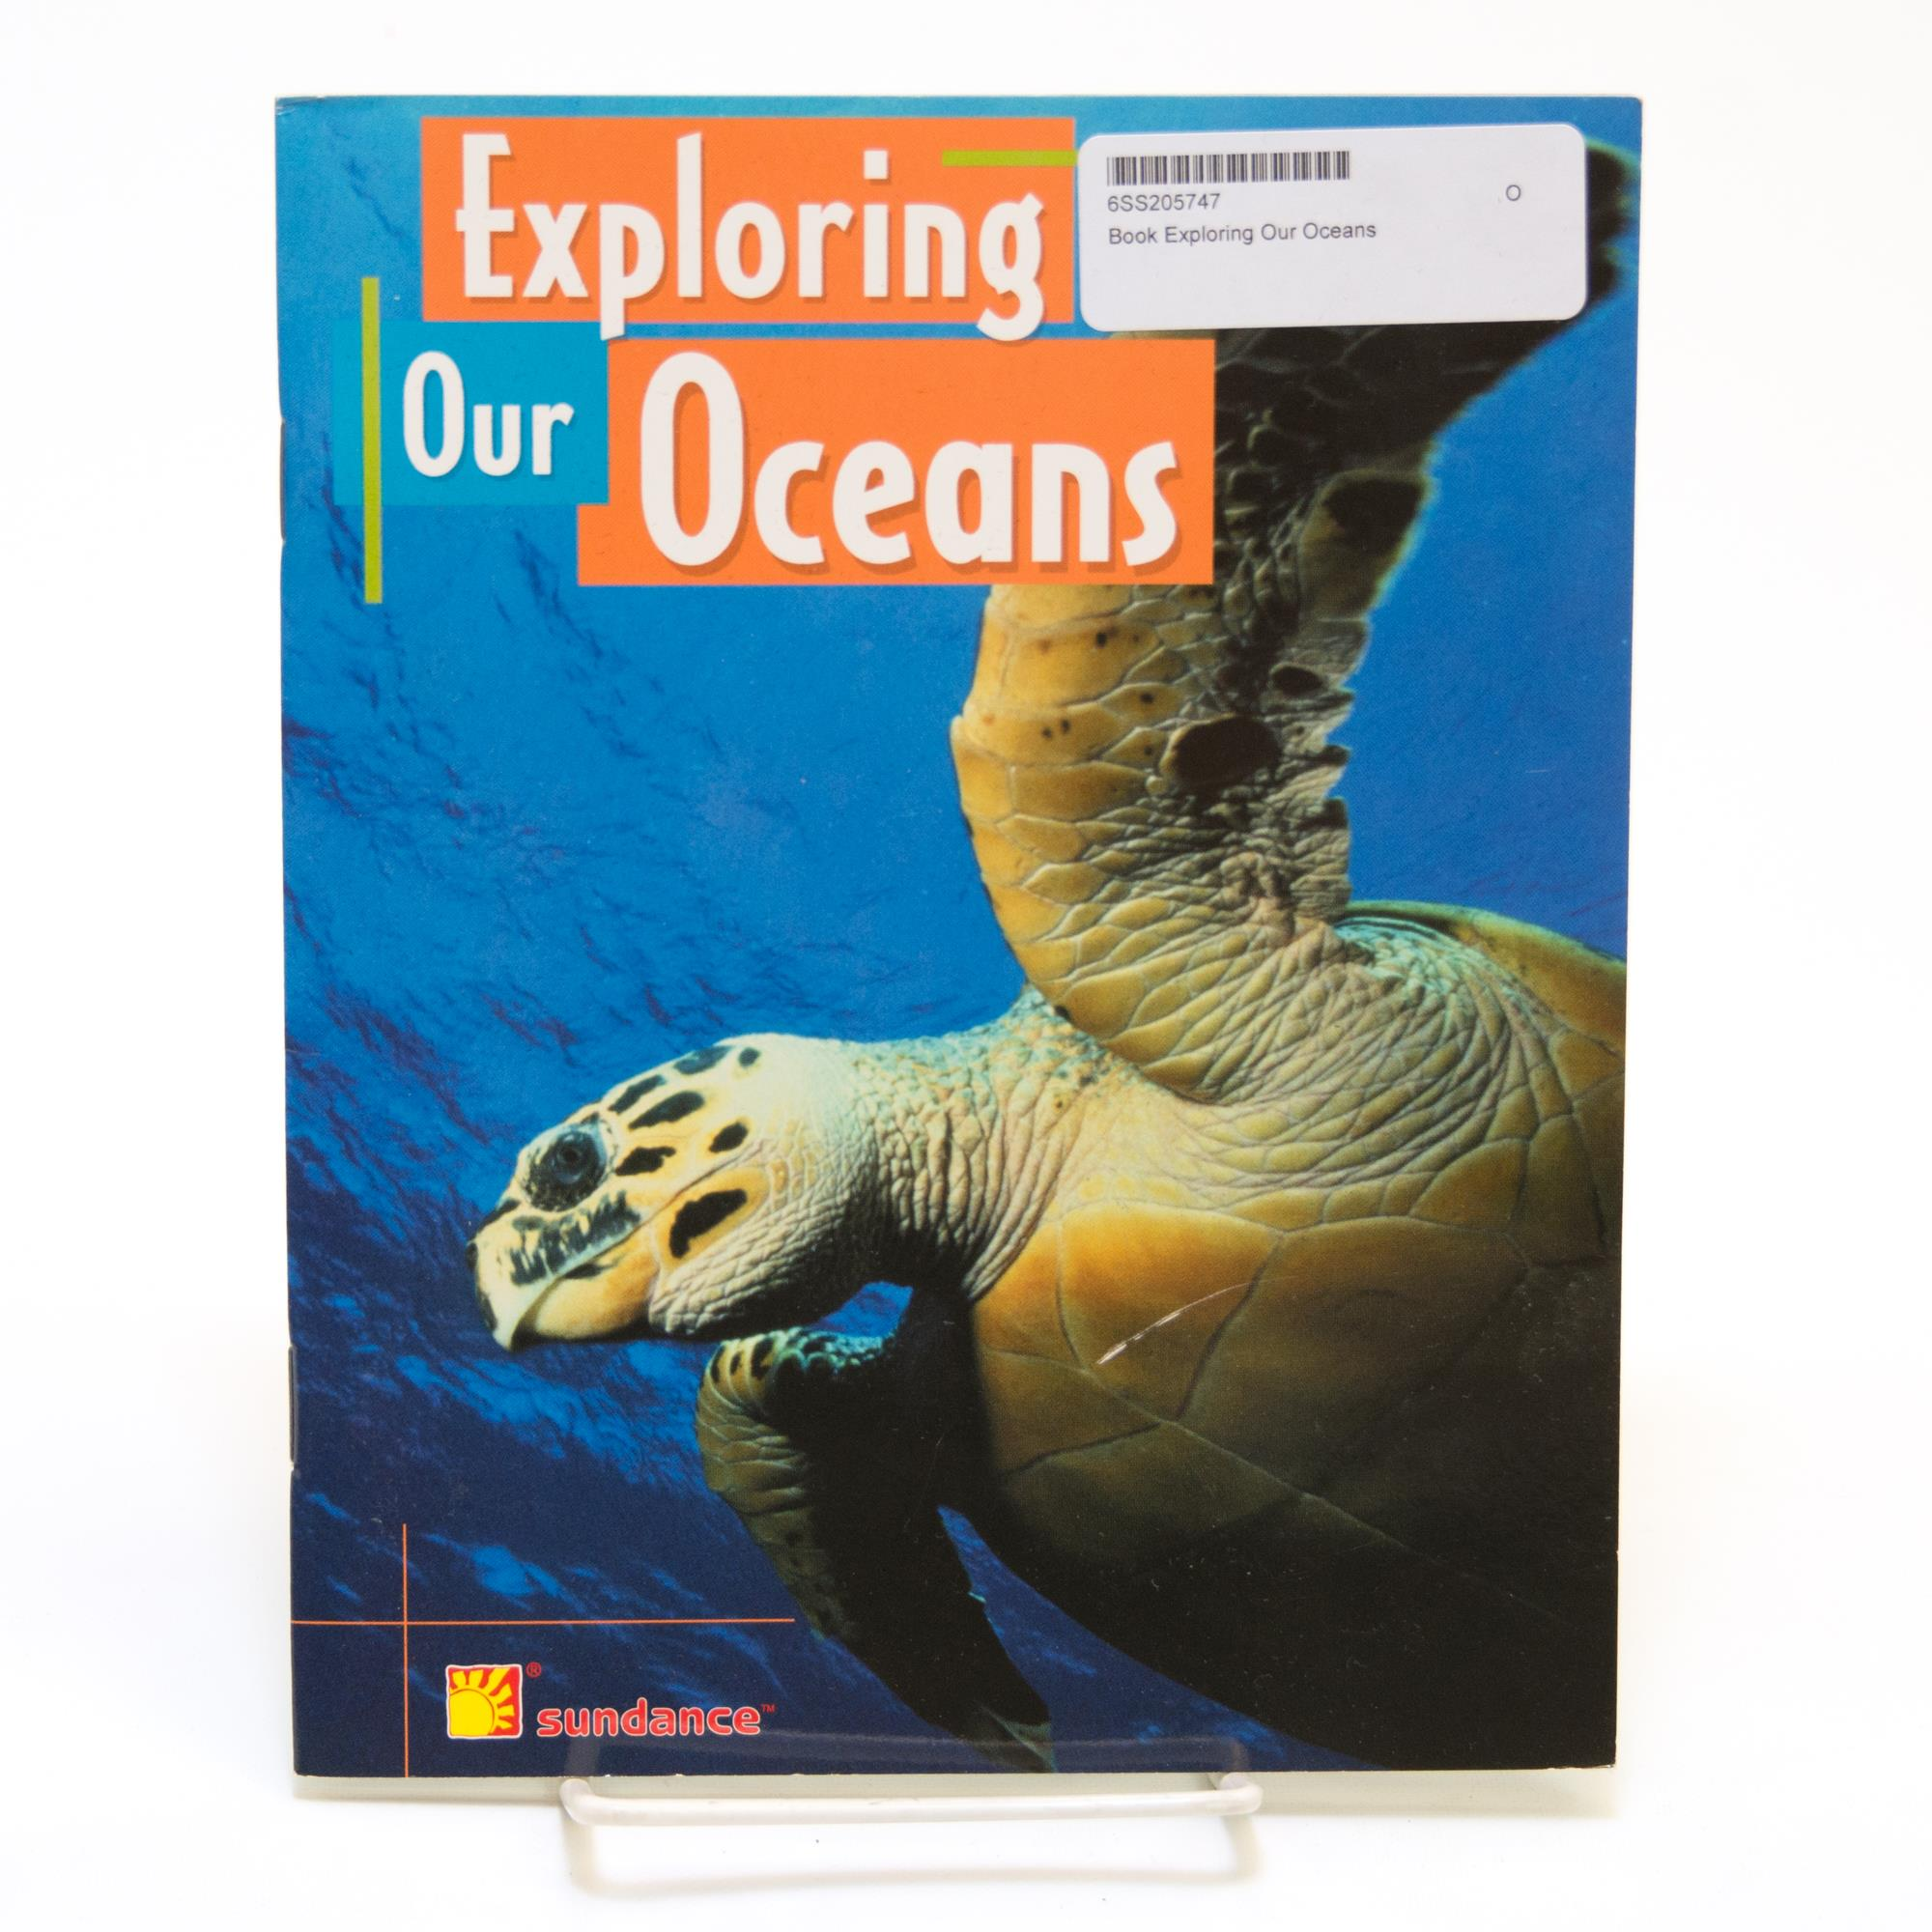 Book Exploring Our Oceans